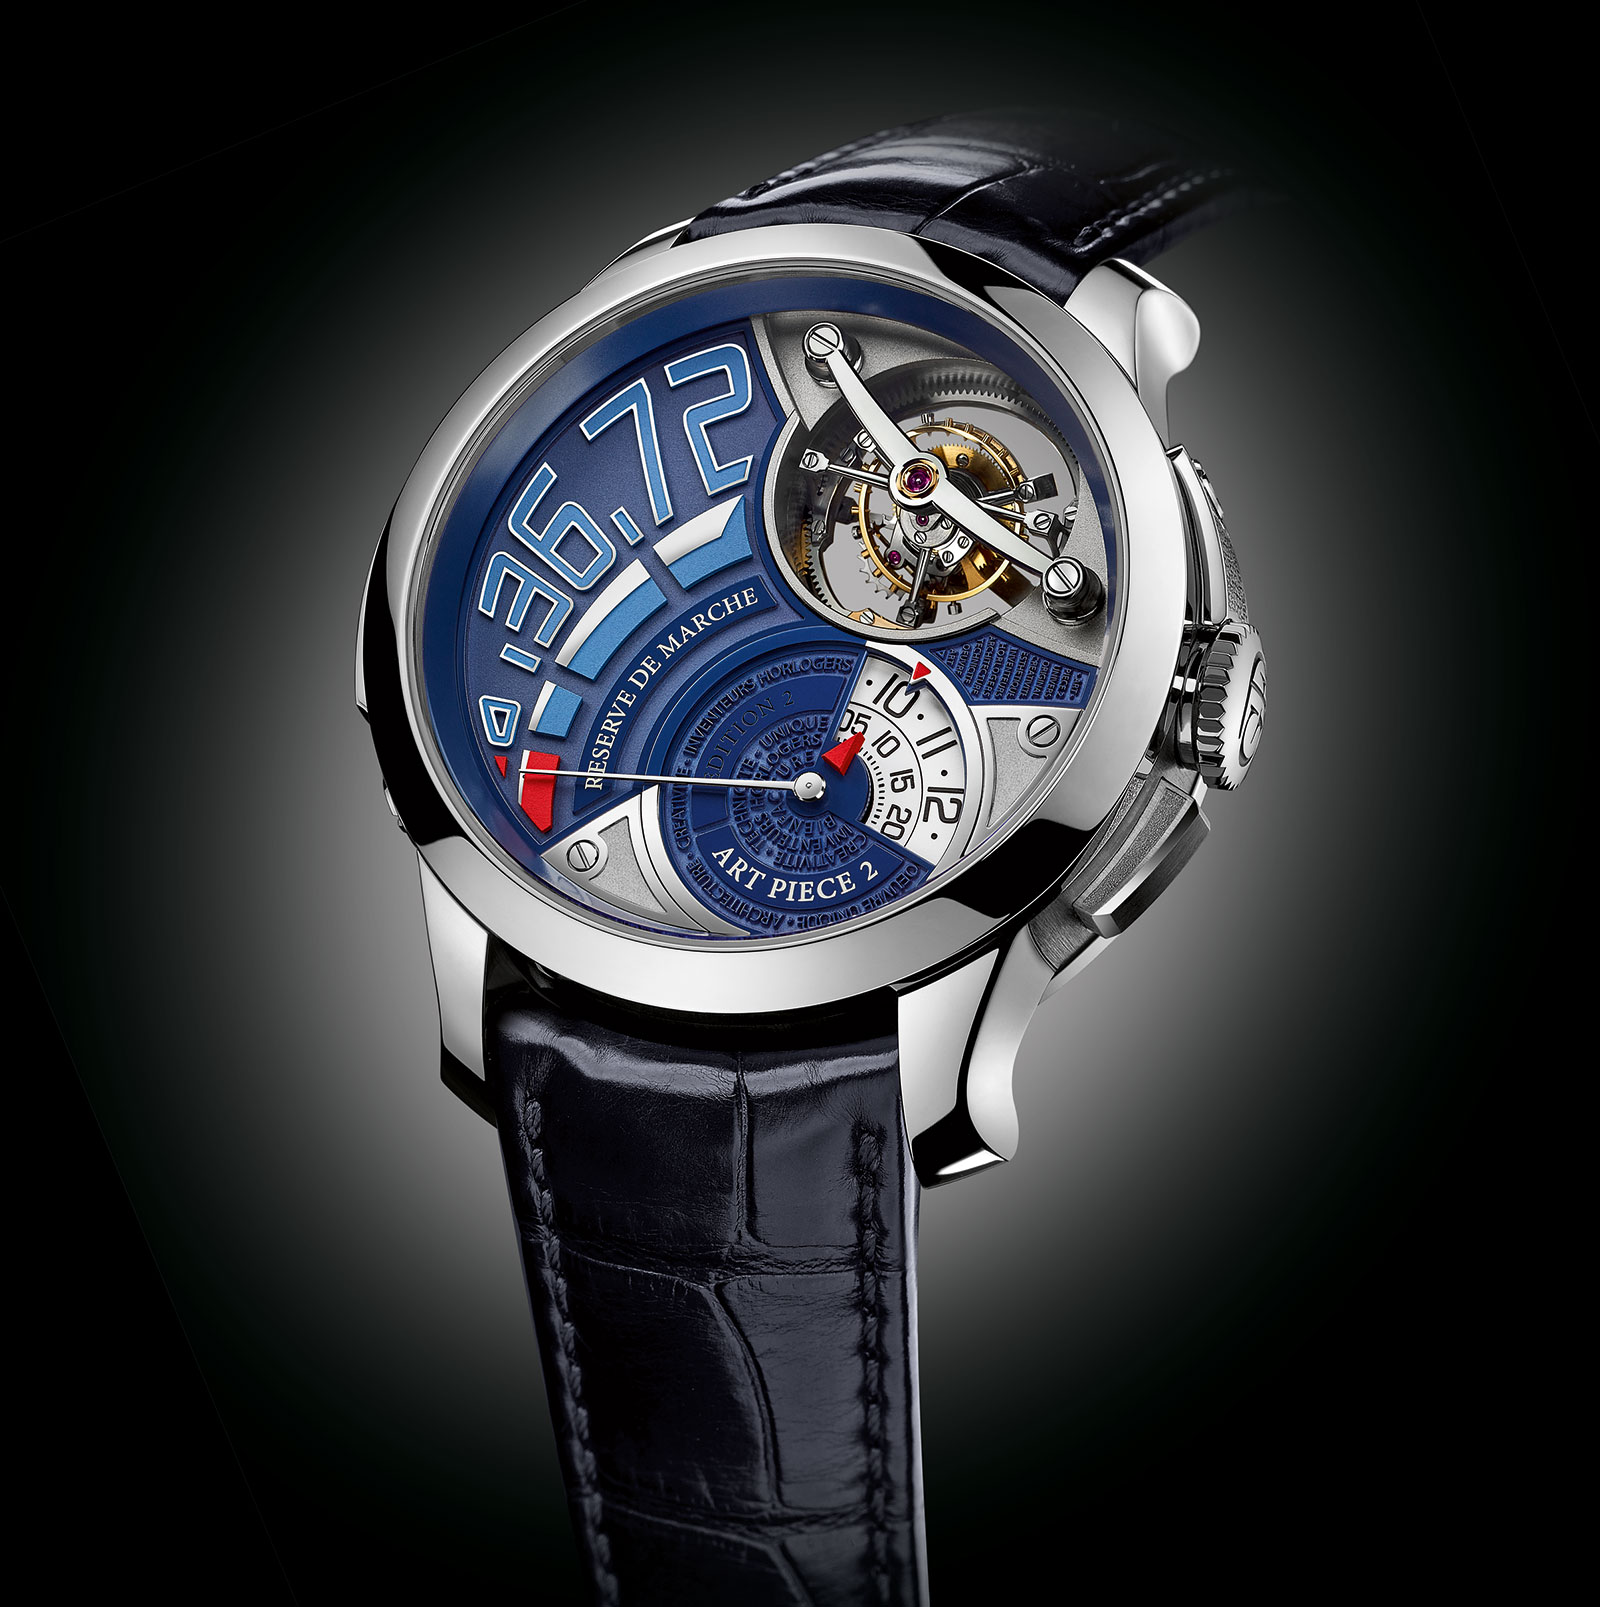 Greubel Forsey Art Piece 2 Edition 2-3